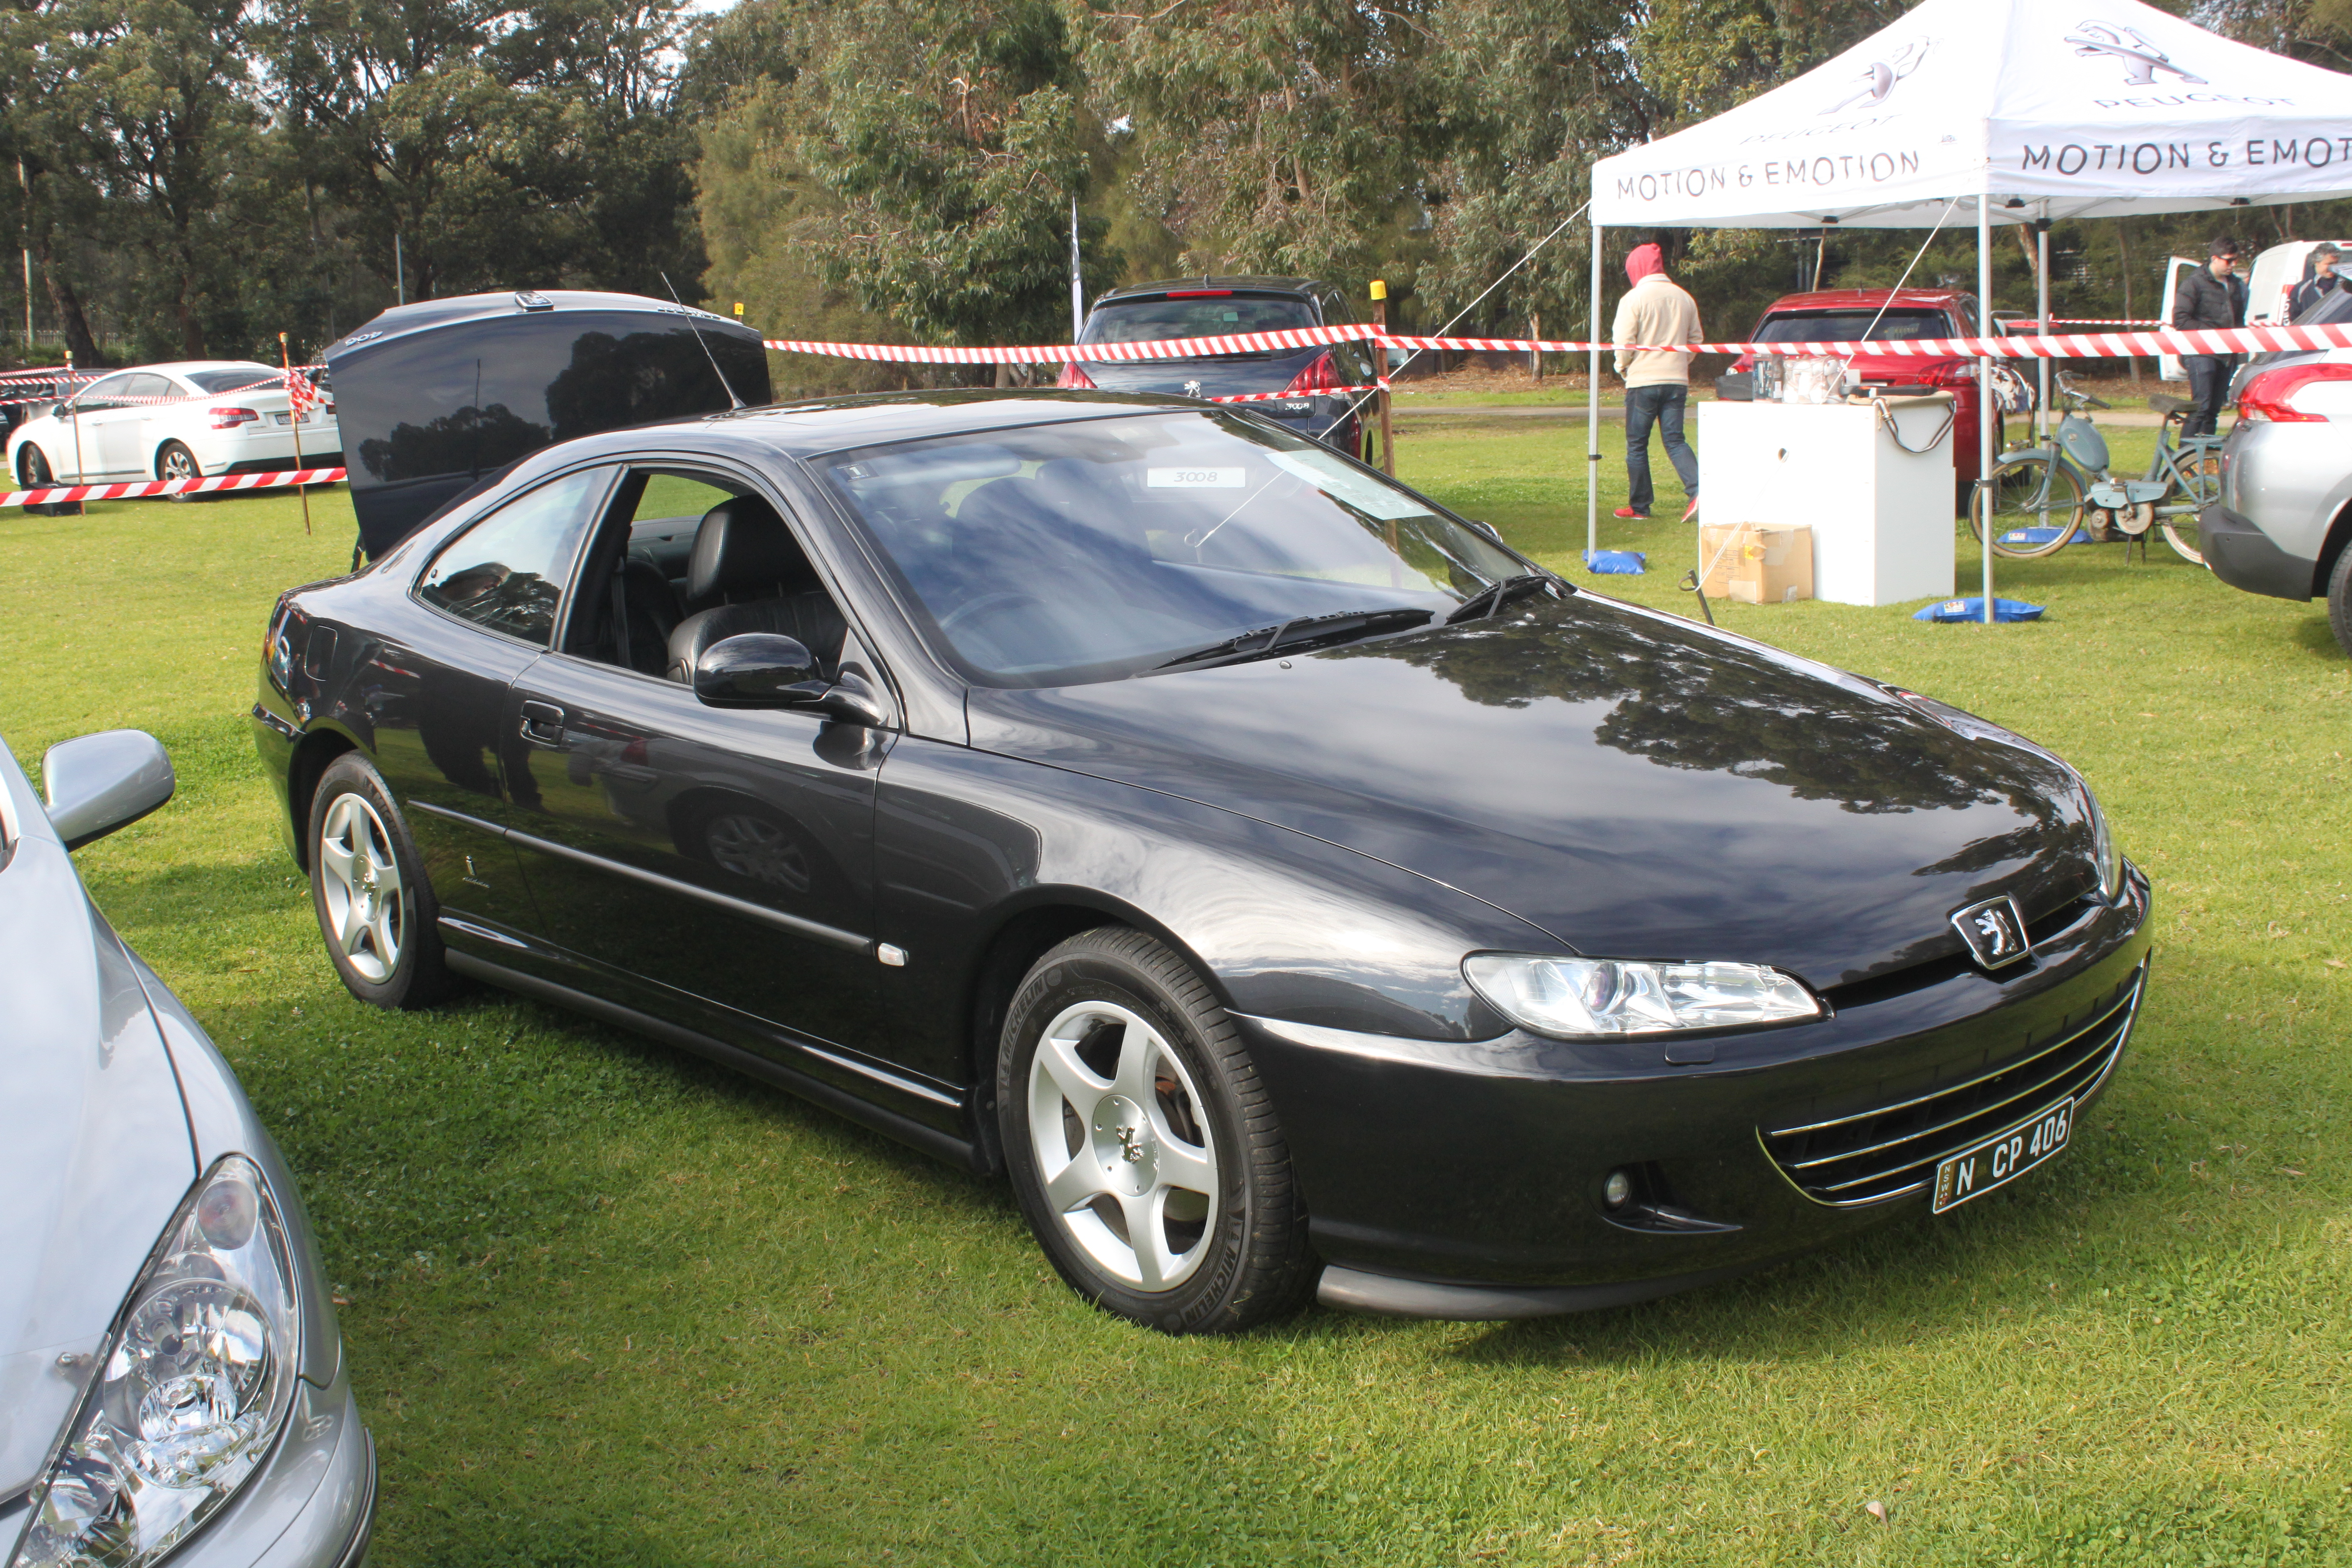 file 2003 peugeot 406 d9 my03 coupe 19636496879 jpg wikimedia commons. Black Bedroom Furniture Sets. Home Design Ideas